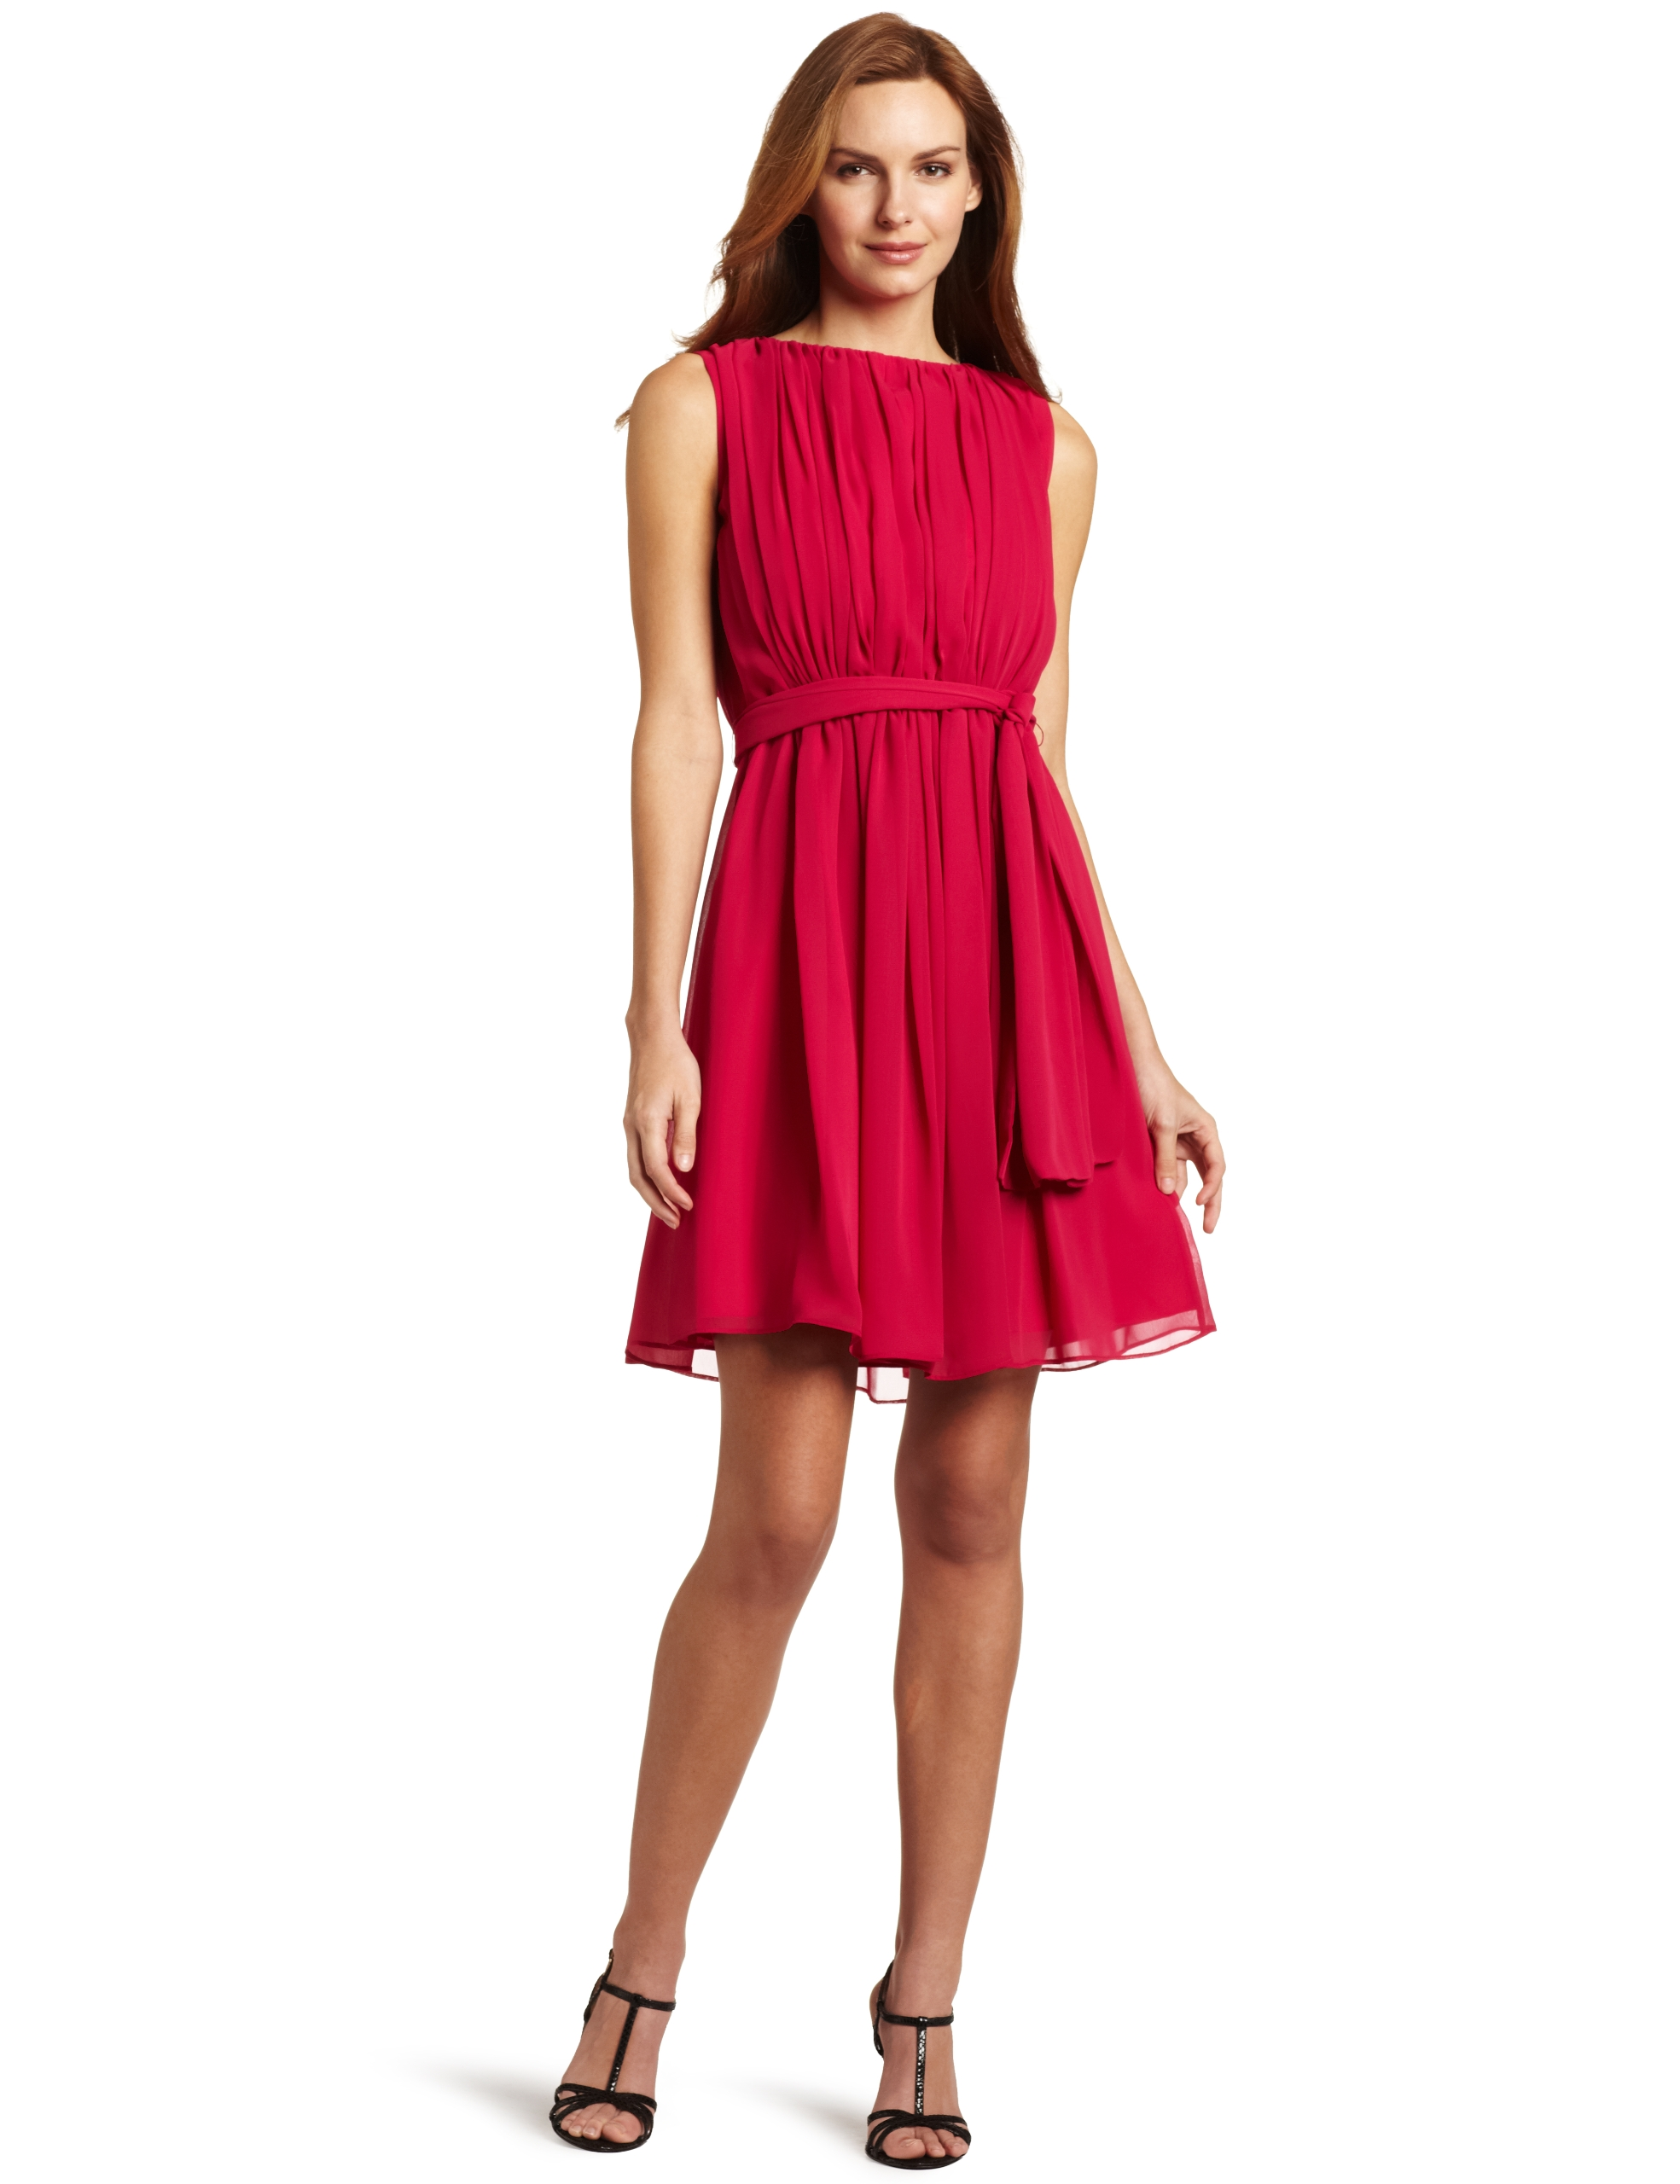 bebe Maude Strapless Dress